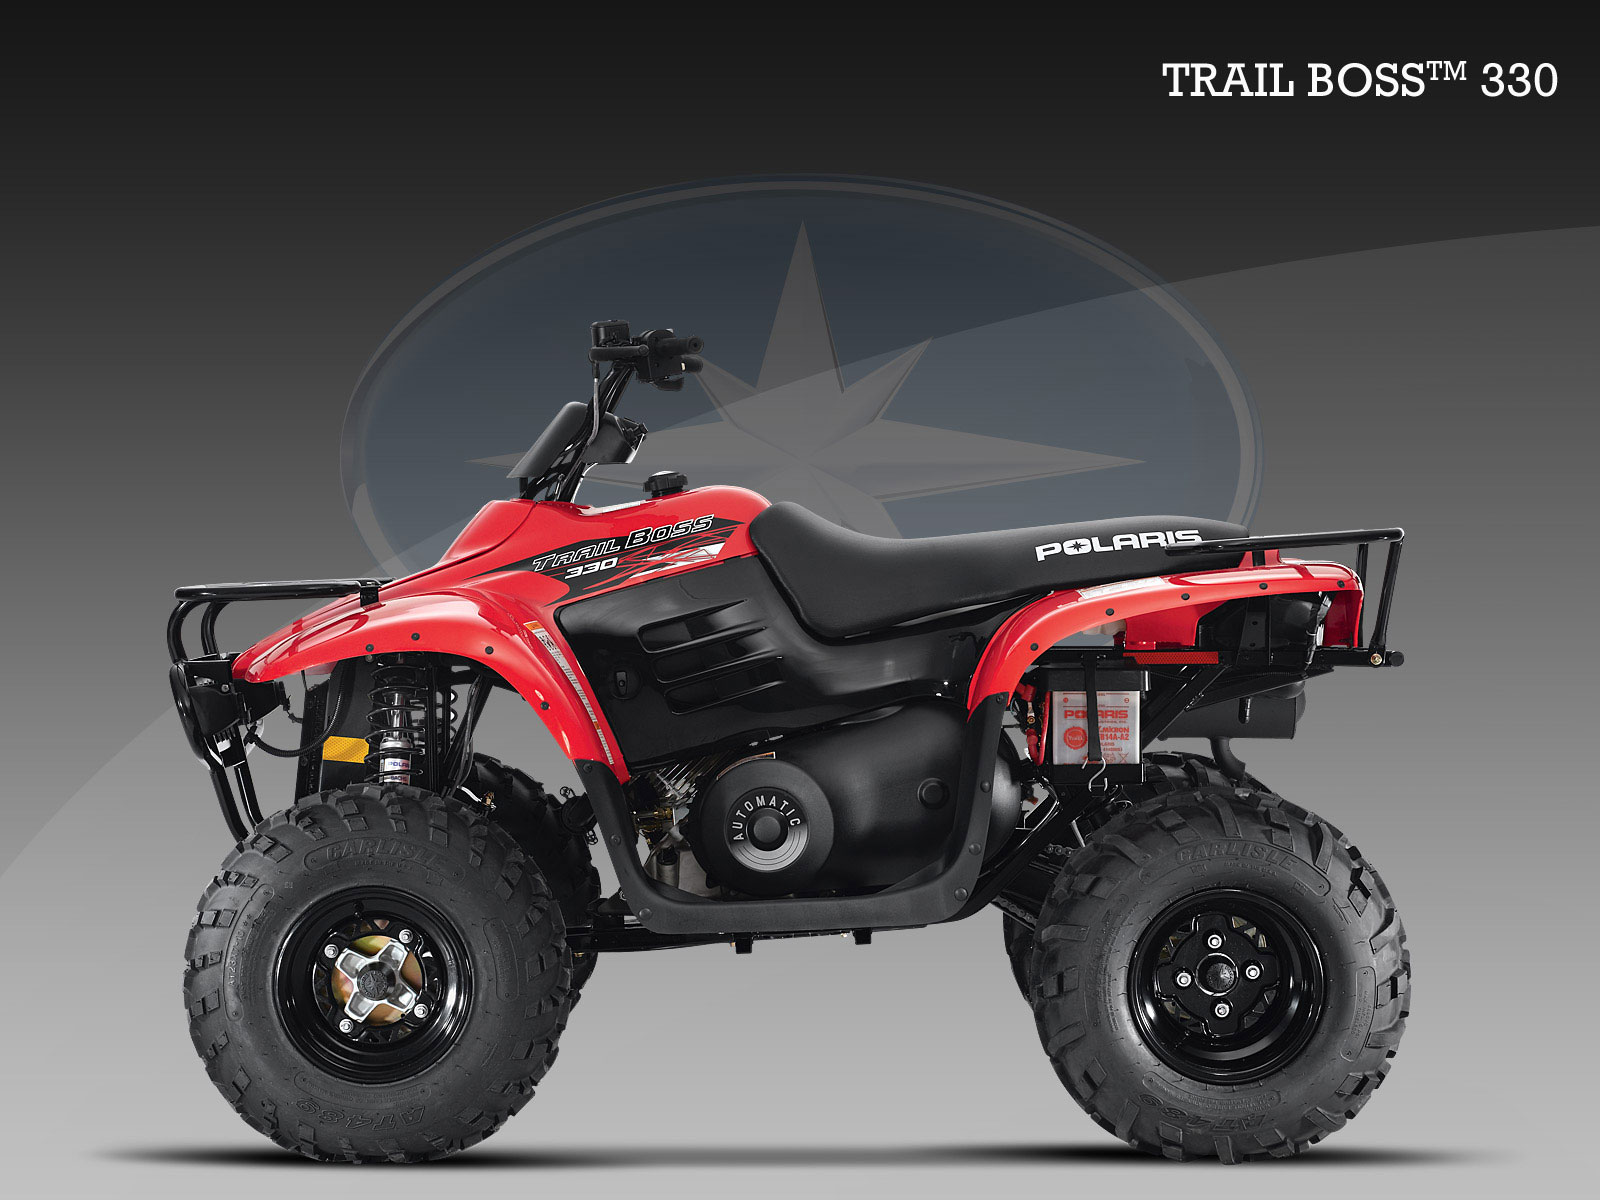 Polaris Trail Boss 325 2002 images #120563